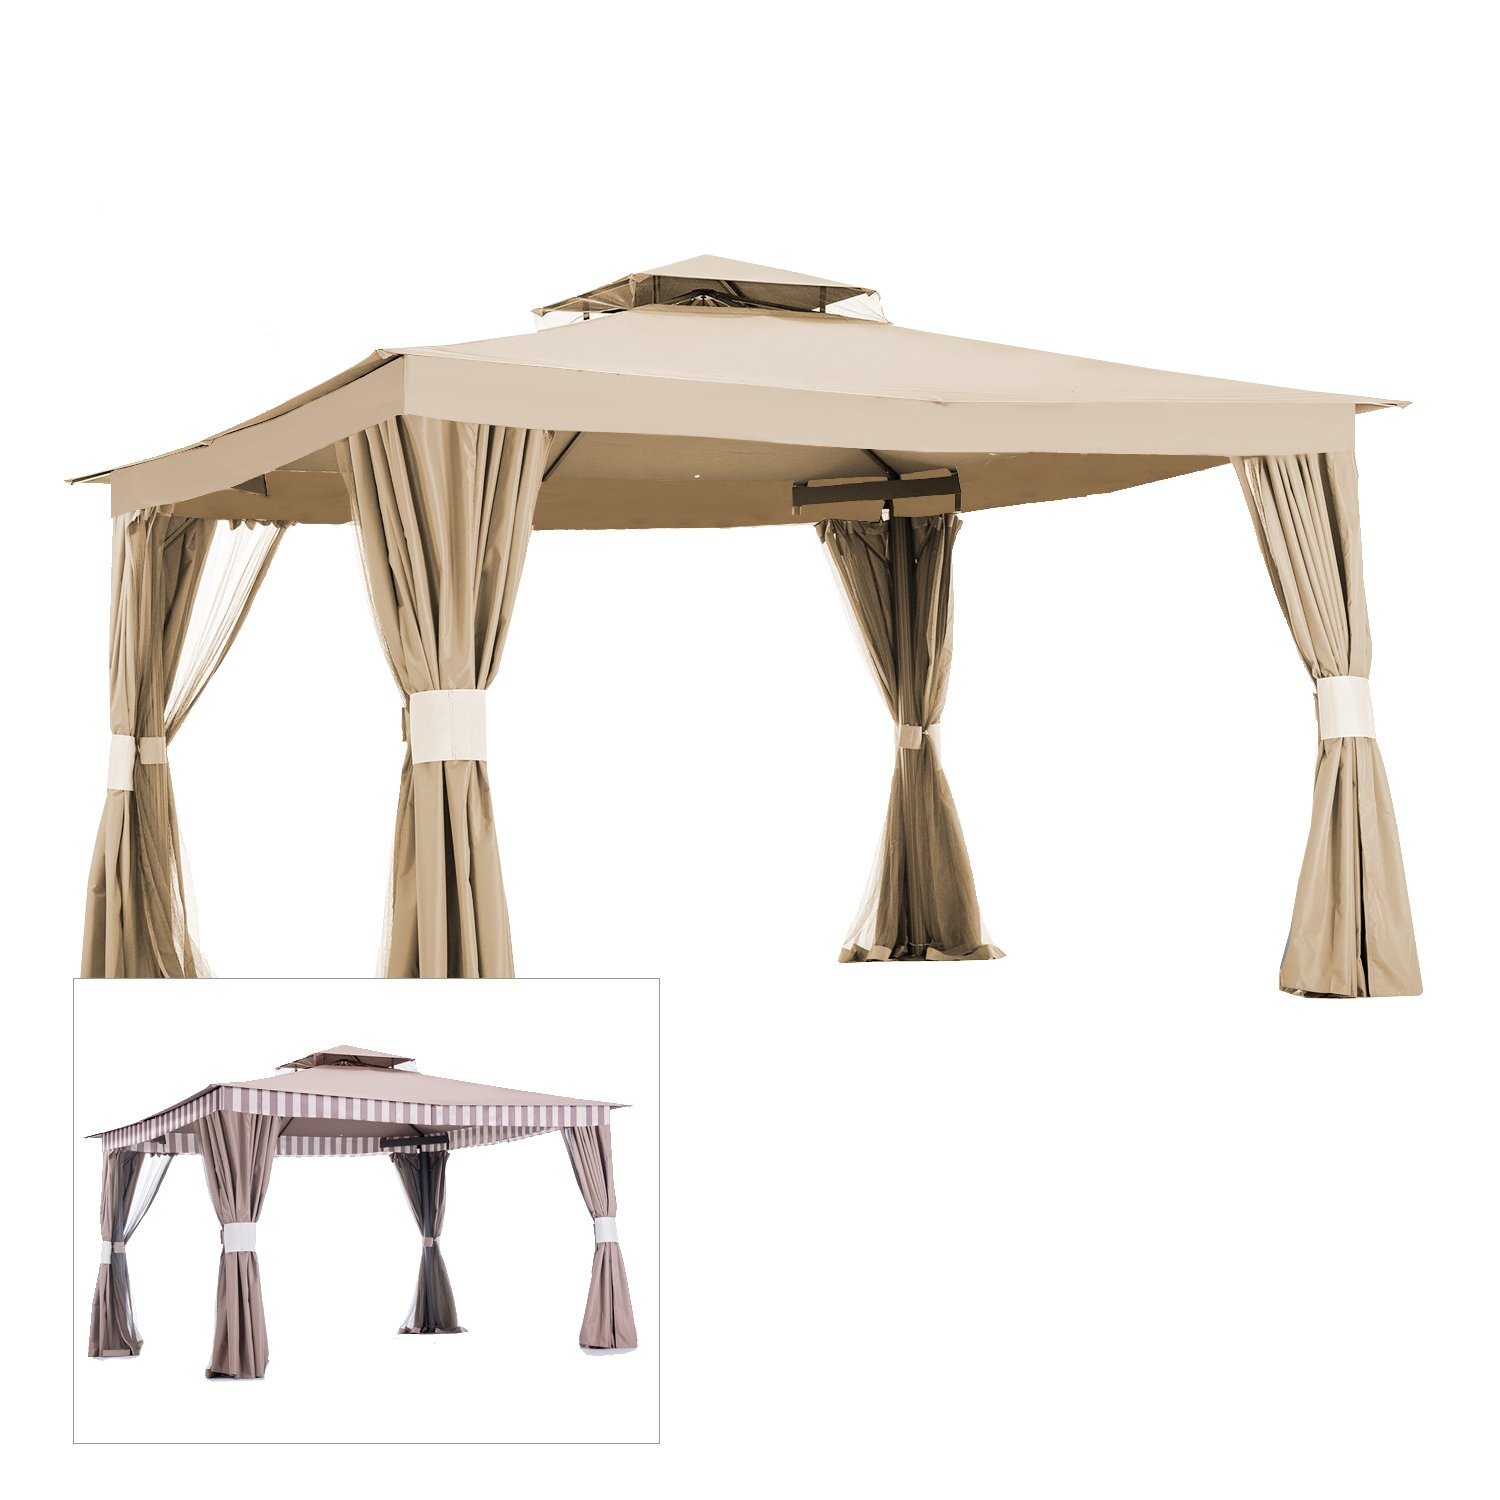 Amazon.com  Garden Winds Replacement Canopy for Striped Valence Gazebo (L-GZ339PAL) - Riplock 350  Gazebo Home Depot  Garden u0026 Outdoor  sc 1 st  Amazon.com : 10 x 12 canopy tent - memphite.com